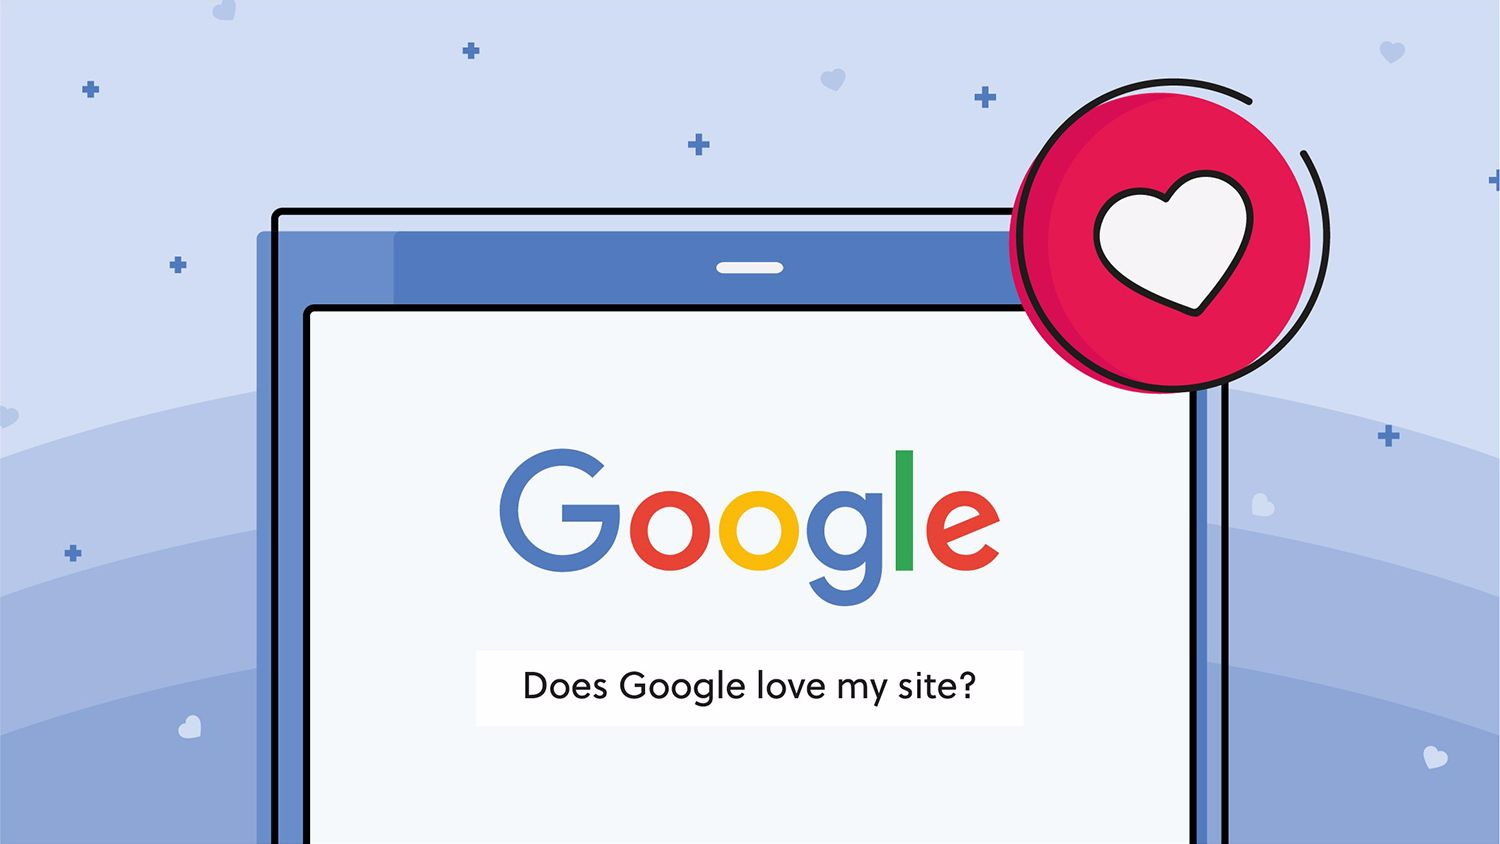 GoogleLoveMySite